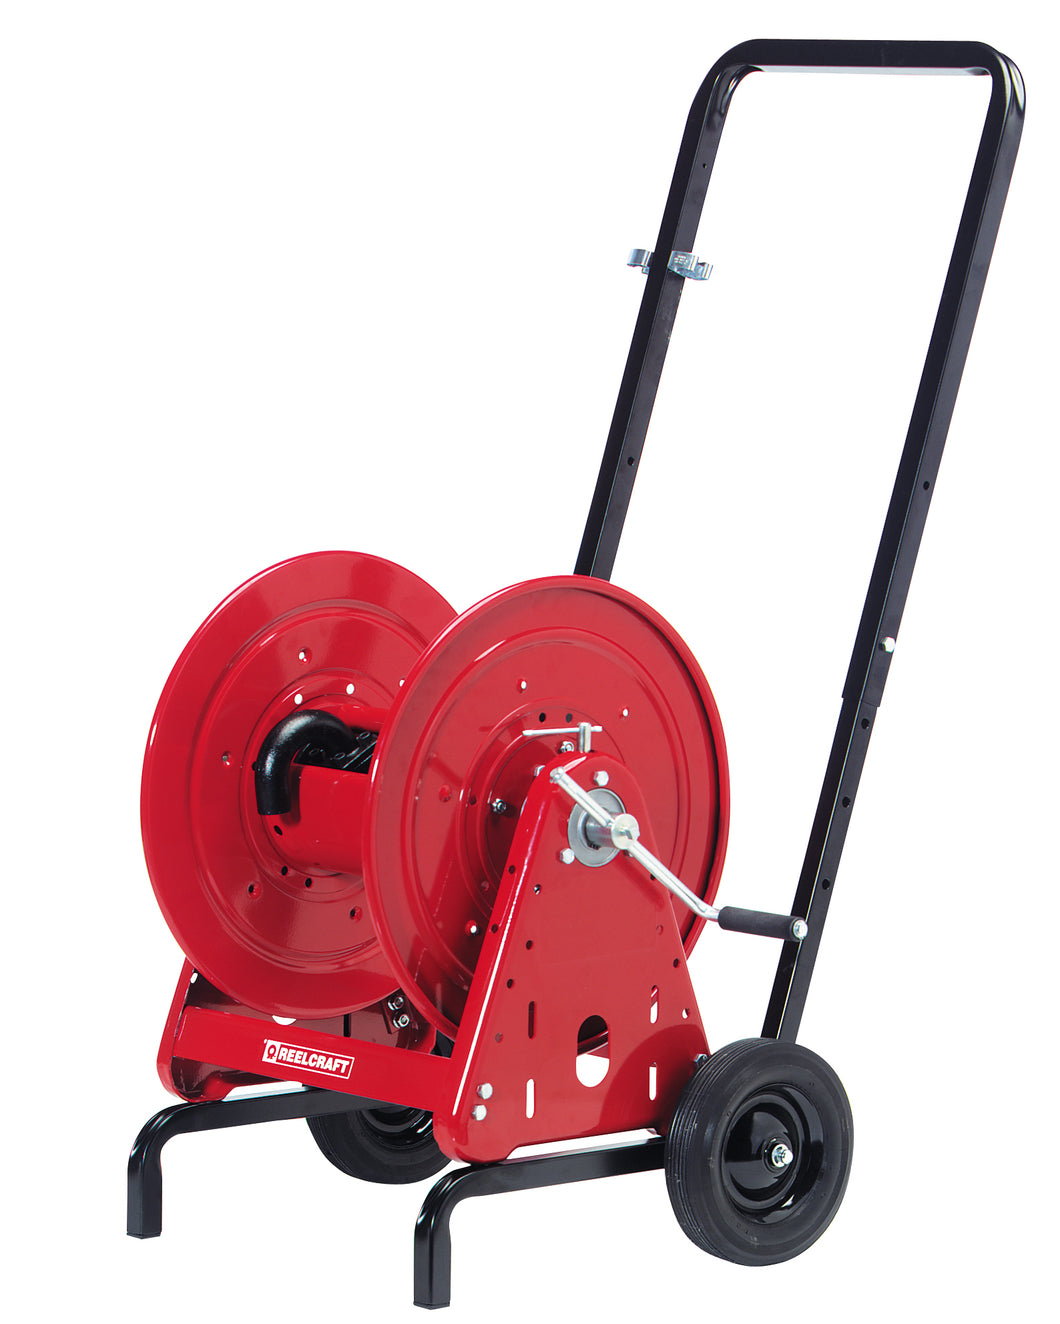 REELCRAFT 600966 Hose Reel with Cart